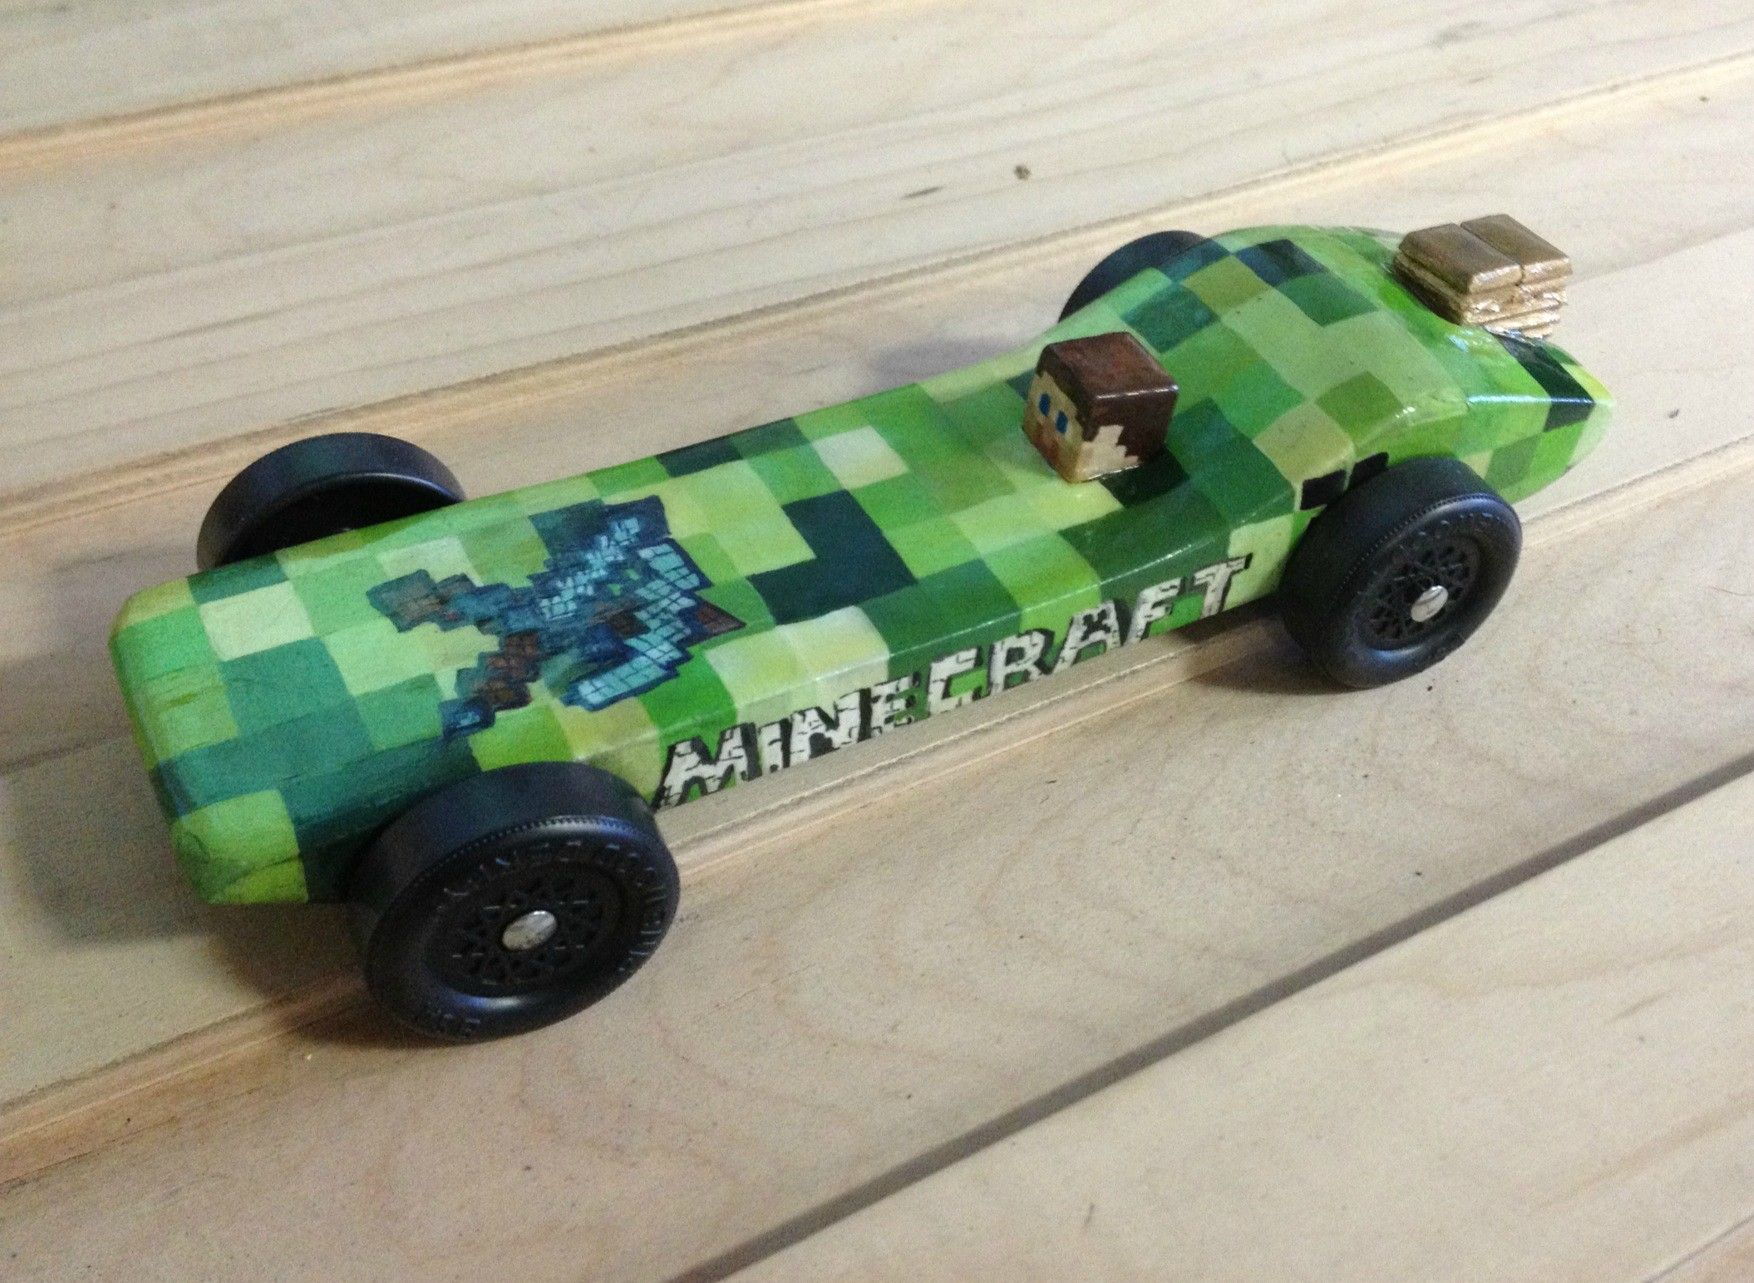 I See Your Stevie Minecraft Car And Submit This One For Your